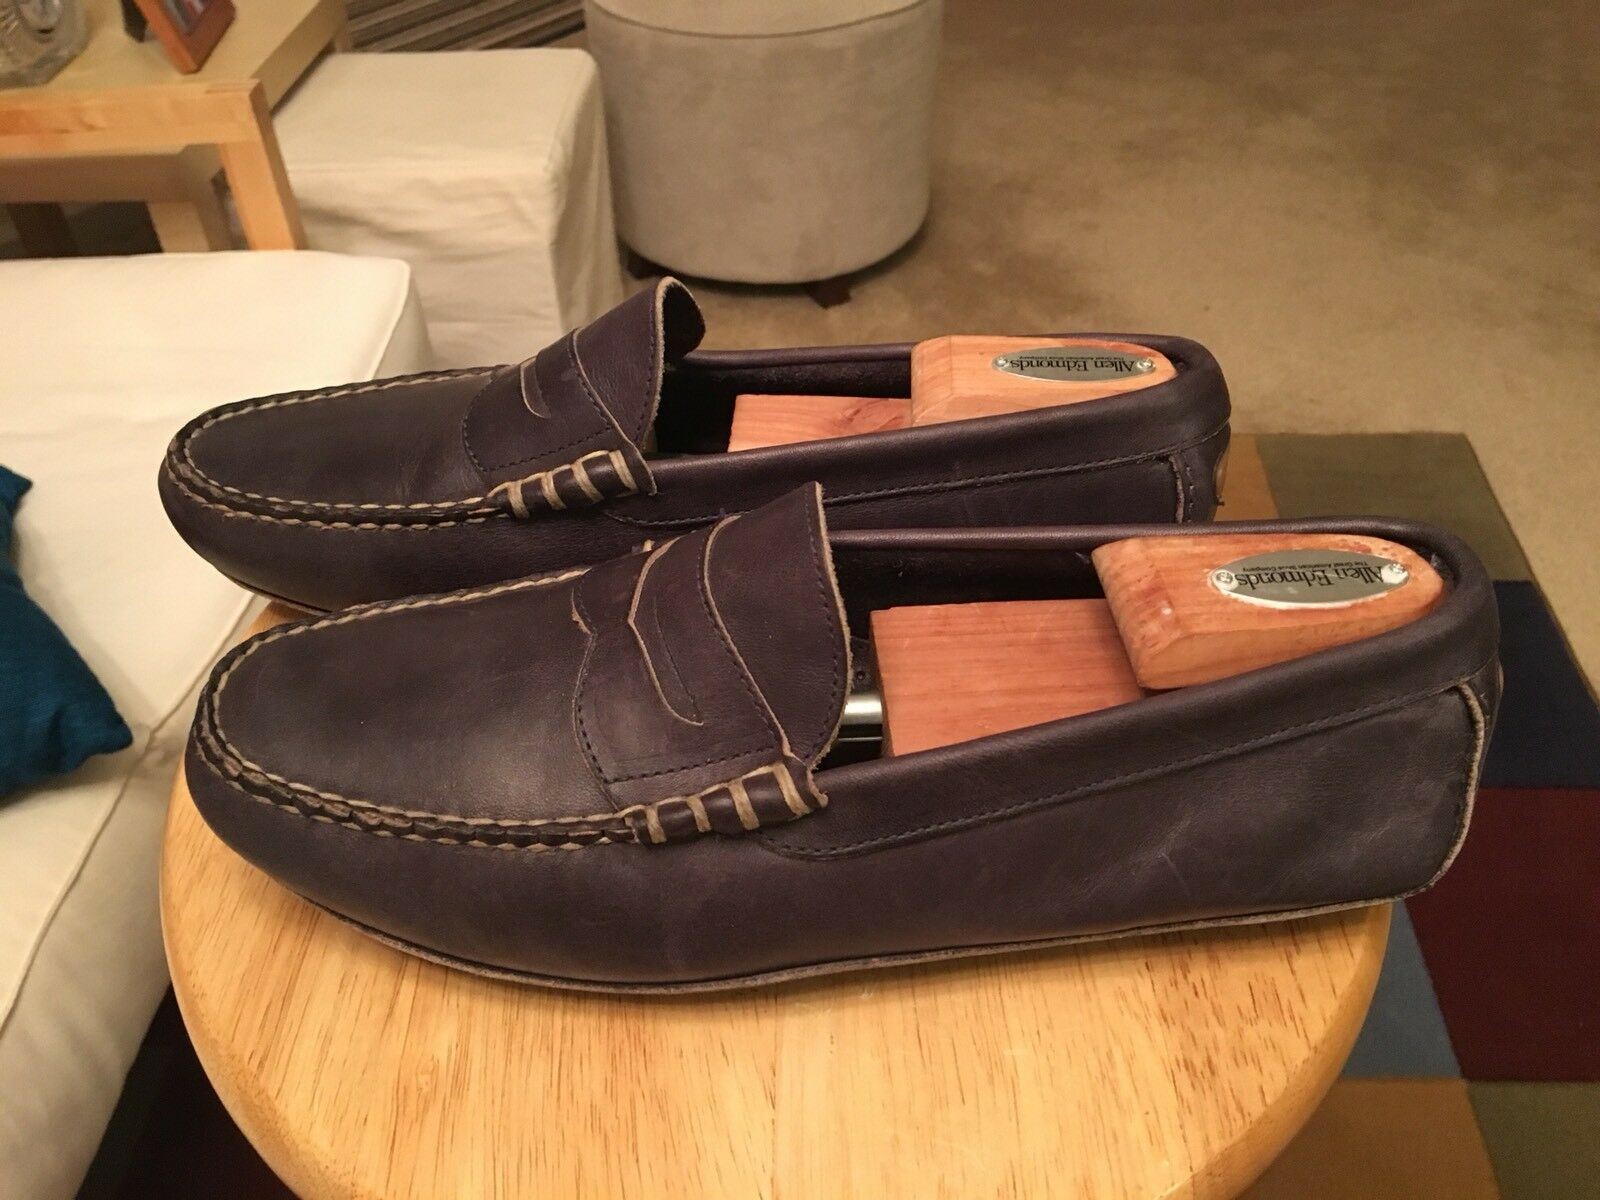 Allen Edmonds AE DAYTONA Navy Men's US10 Leather Penny Loafers shoes